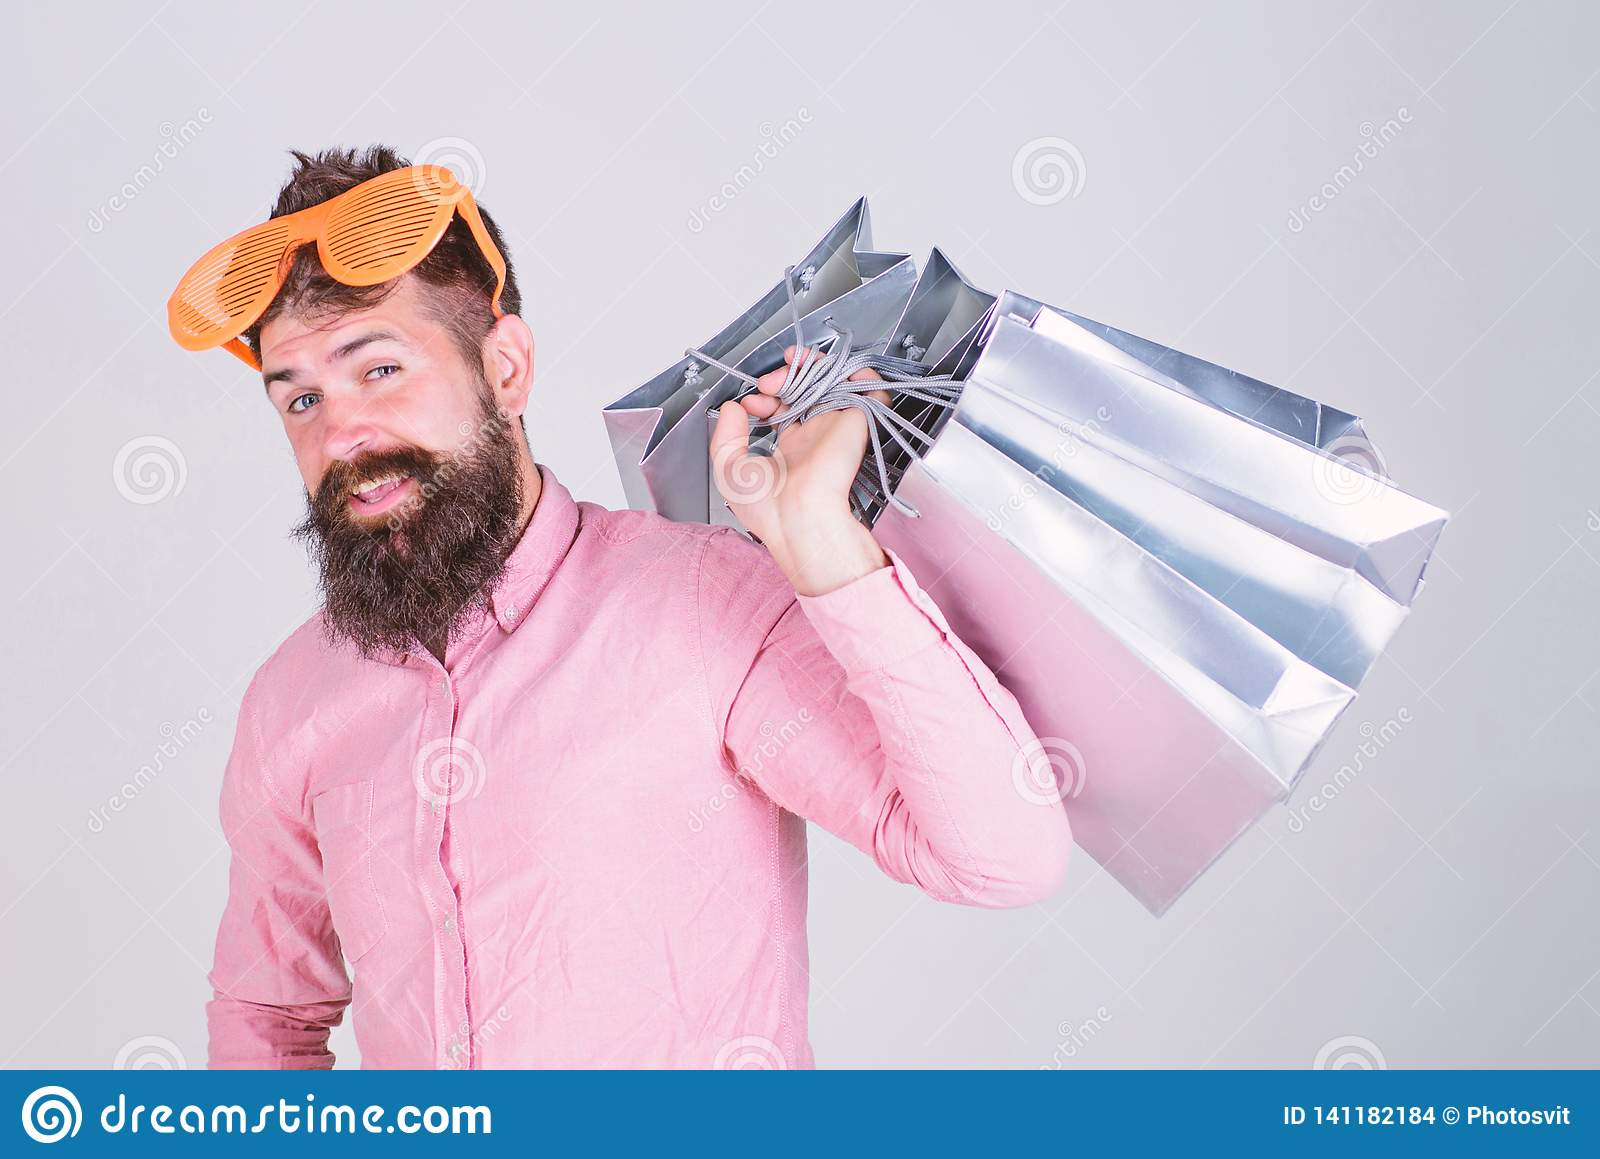 Obsessed with shopping. Addicted consumer concept. Man carefree bearded hold shopping bags. Shopping dumb wasting money